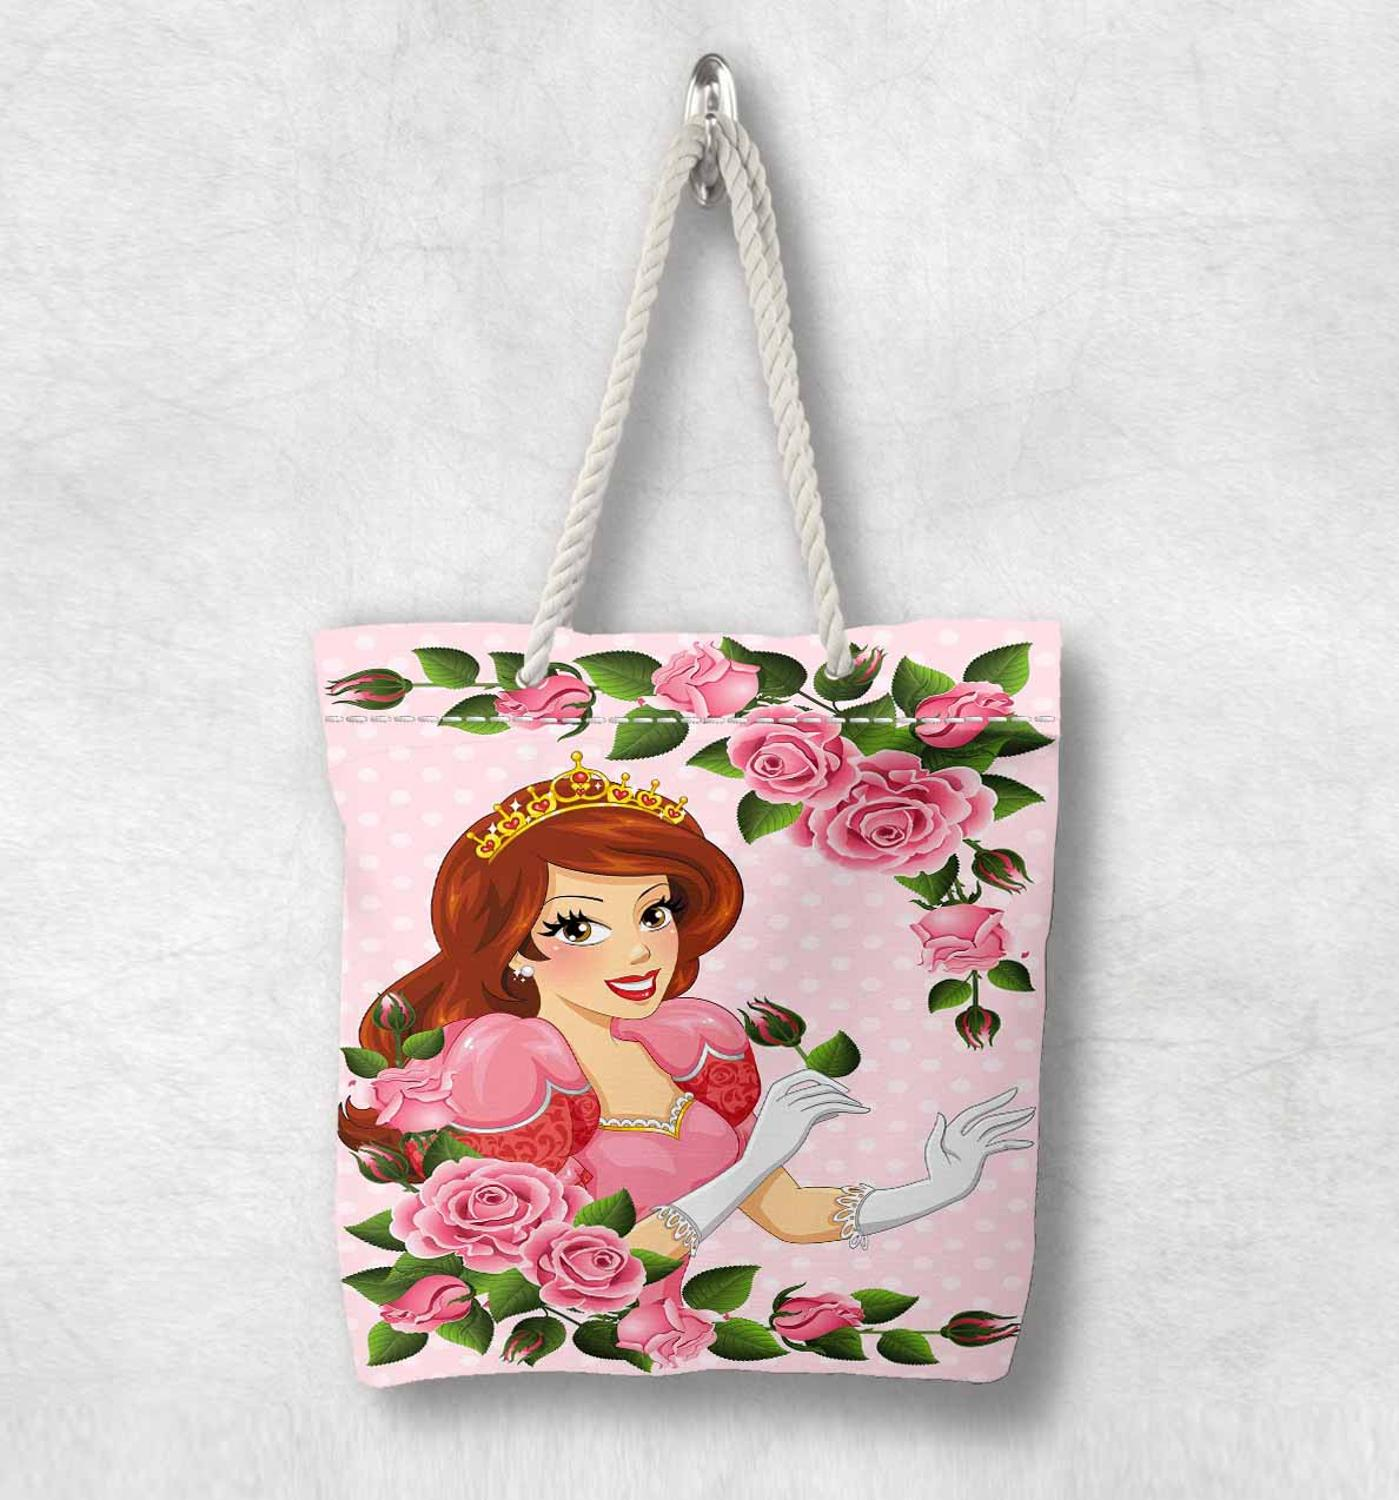 Else Pink Roses Princess Flowers Floral Fashion White Rope Handle Canvas Bag  Cartoon Print Zippered Tote Bag Shoulder Bag